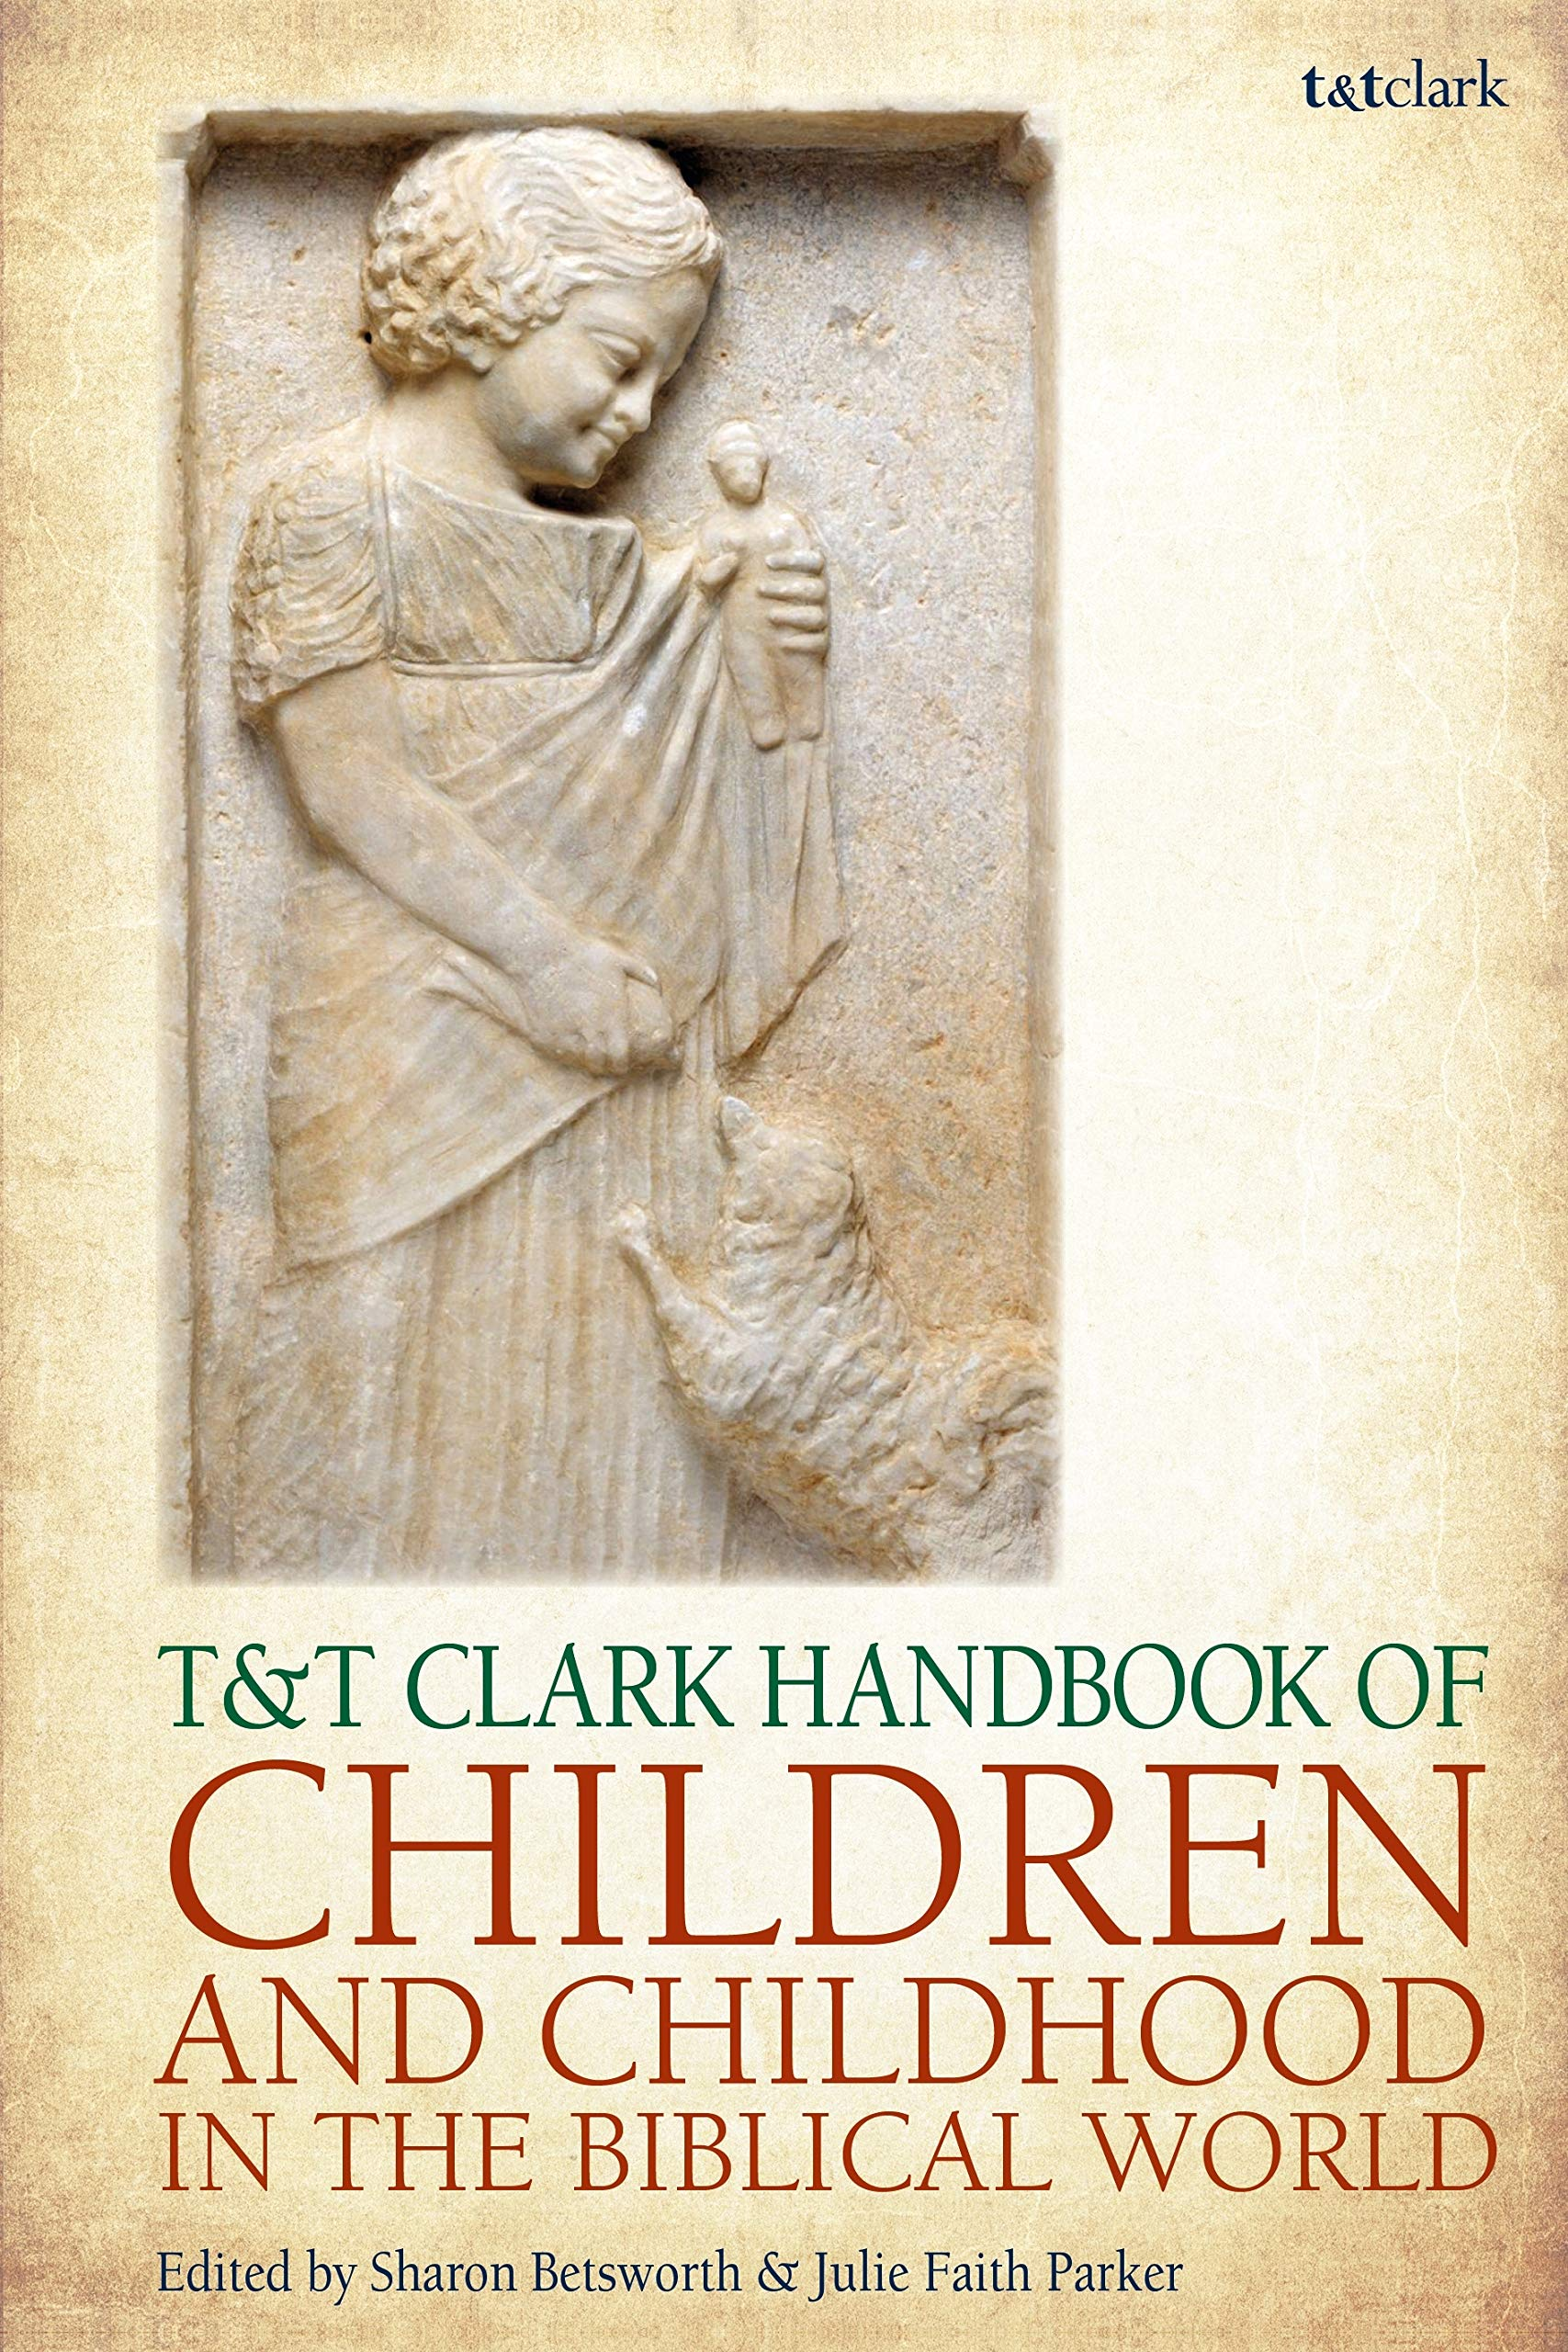 T&T Clark Handbook of Children and Childhood in the Biblical World (T&T  Clark Handbooks): Amazon.co.uk: Julie Faith Parker, Sharon Betsworth:  9780567672575: ...